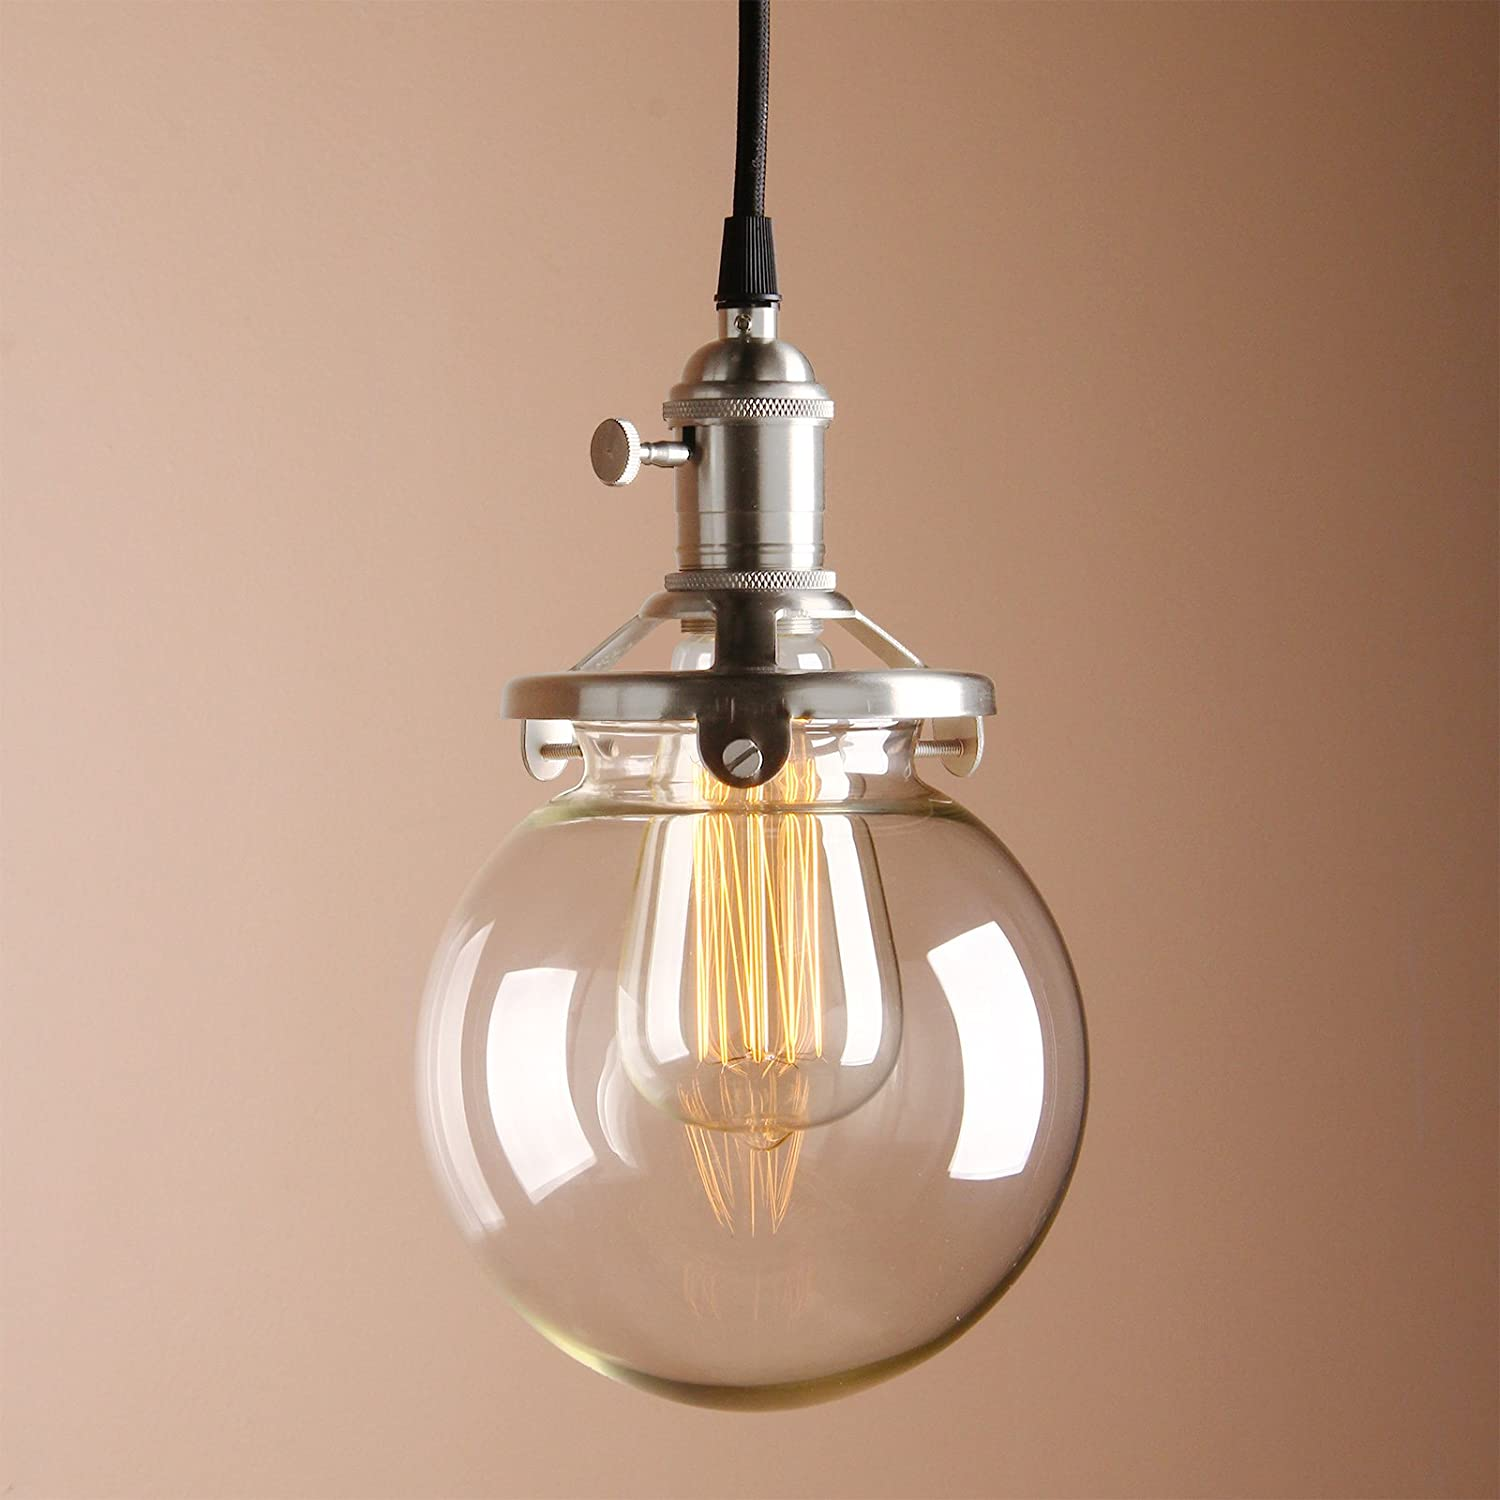 four zoom millennium gold to vintage productdetail hover lighting sale on vg htm pendant inch light